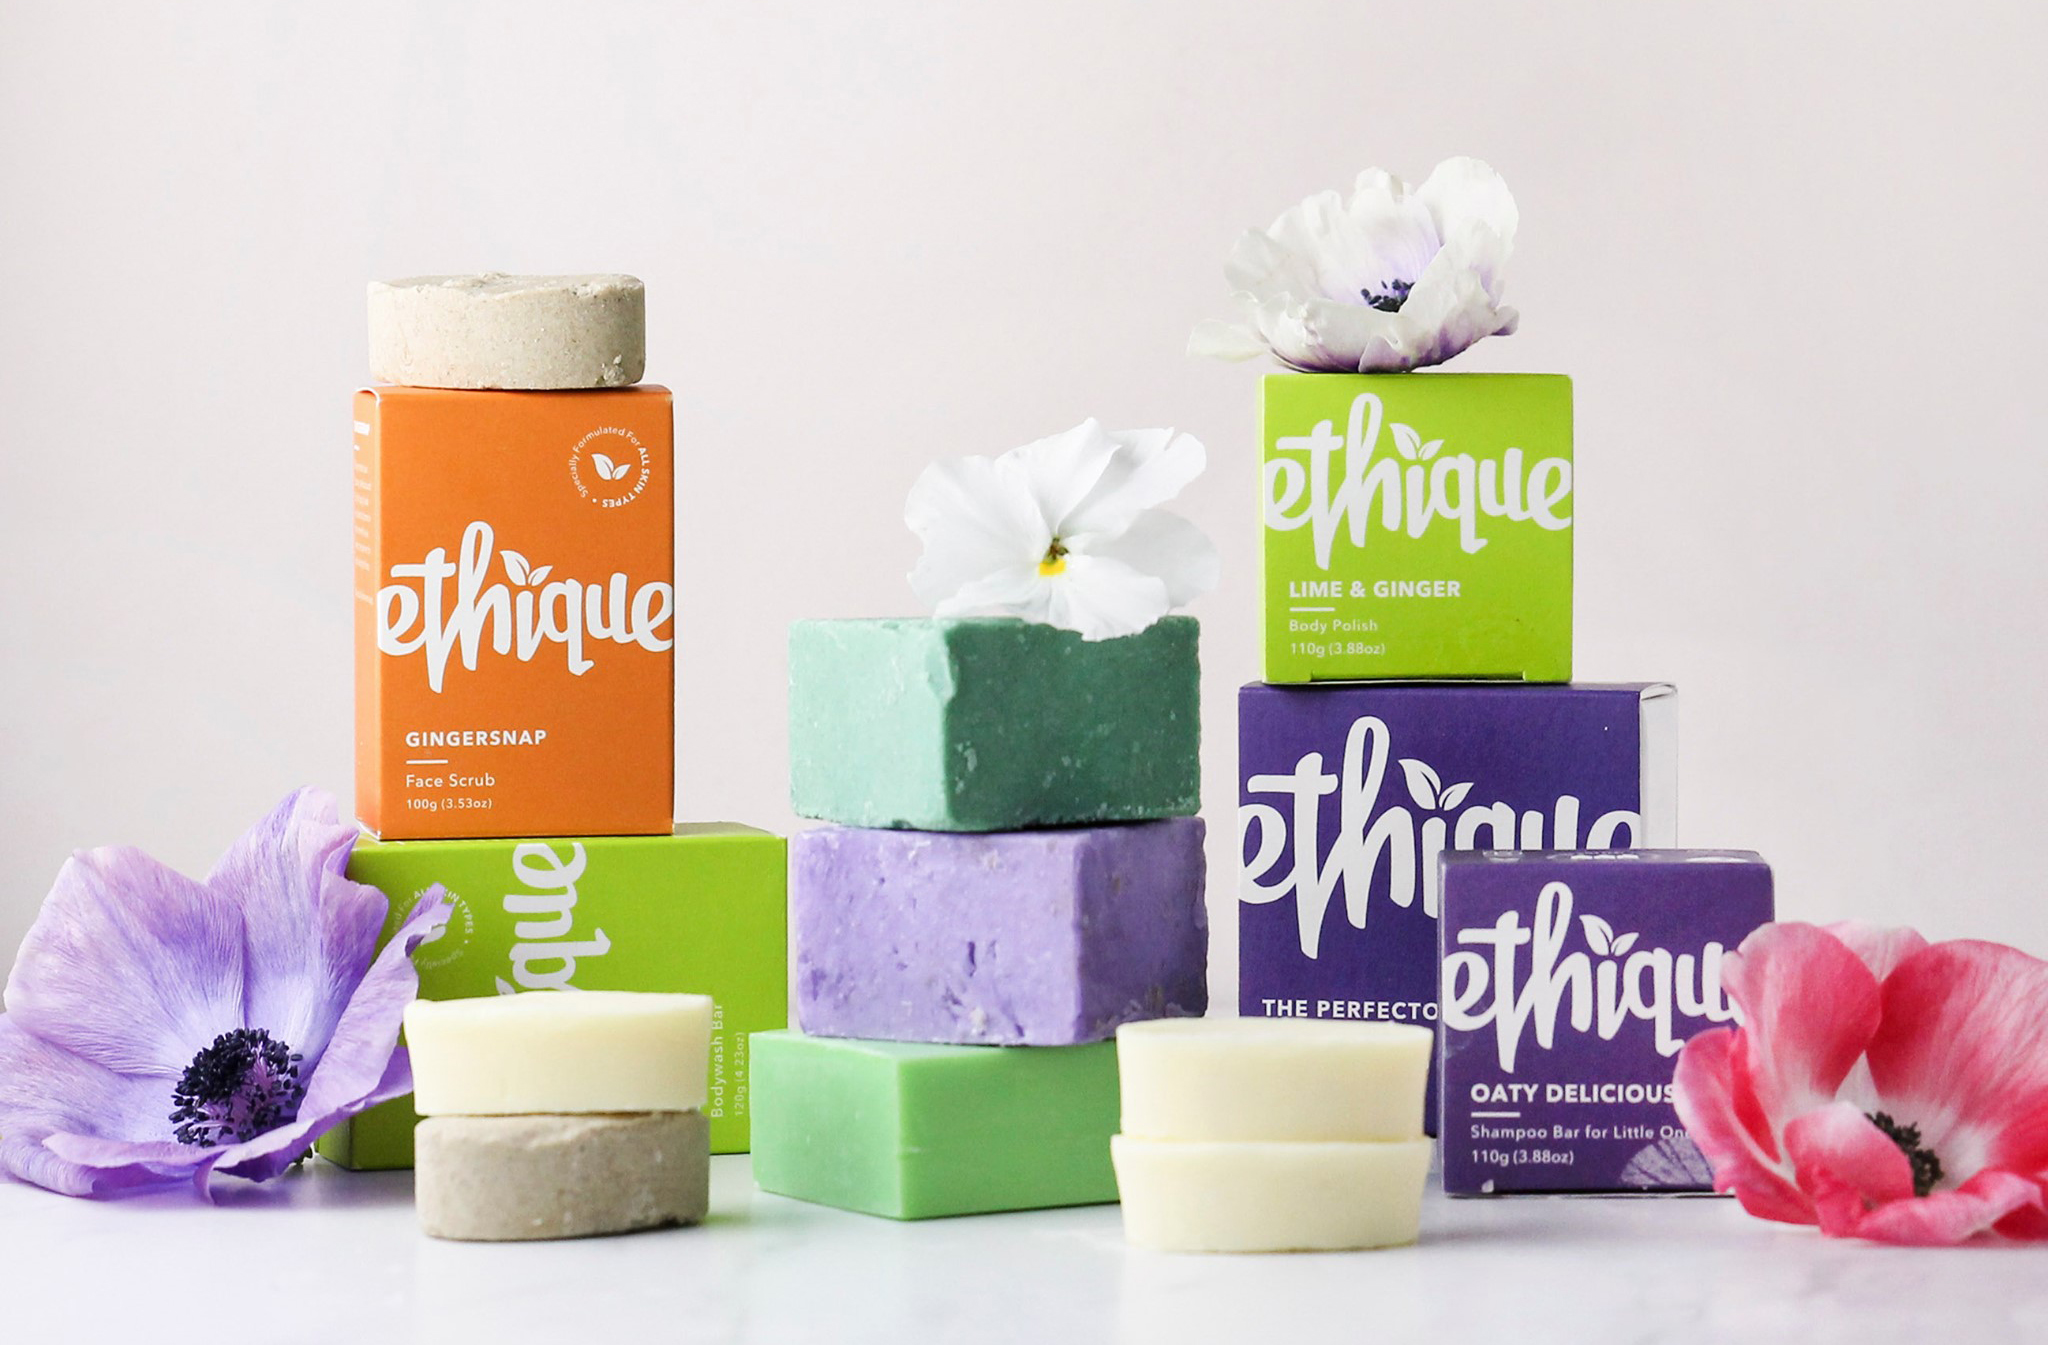 A collection of shampoo soap bars and brightly coloured boxes from Ethique